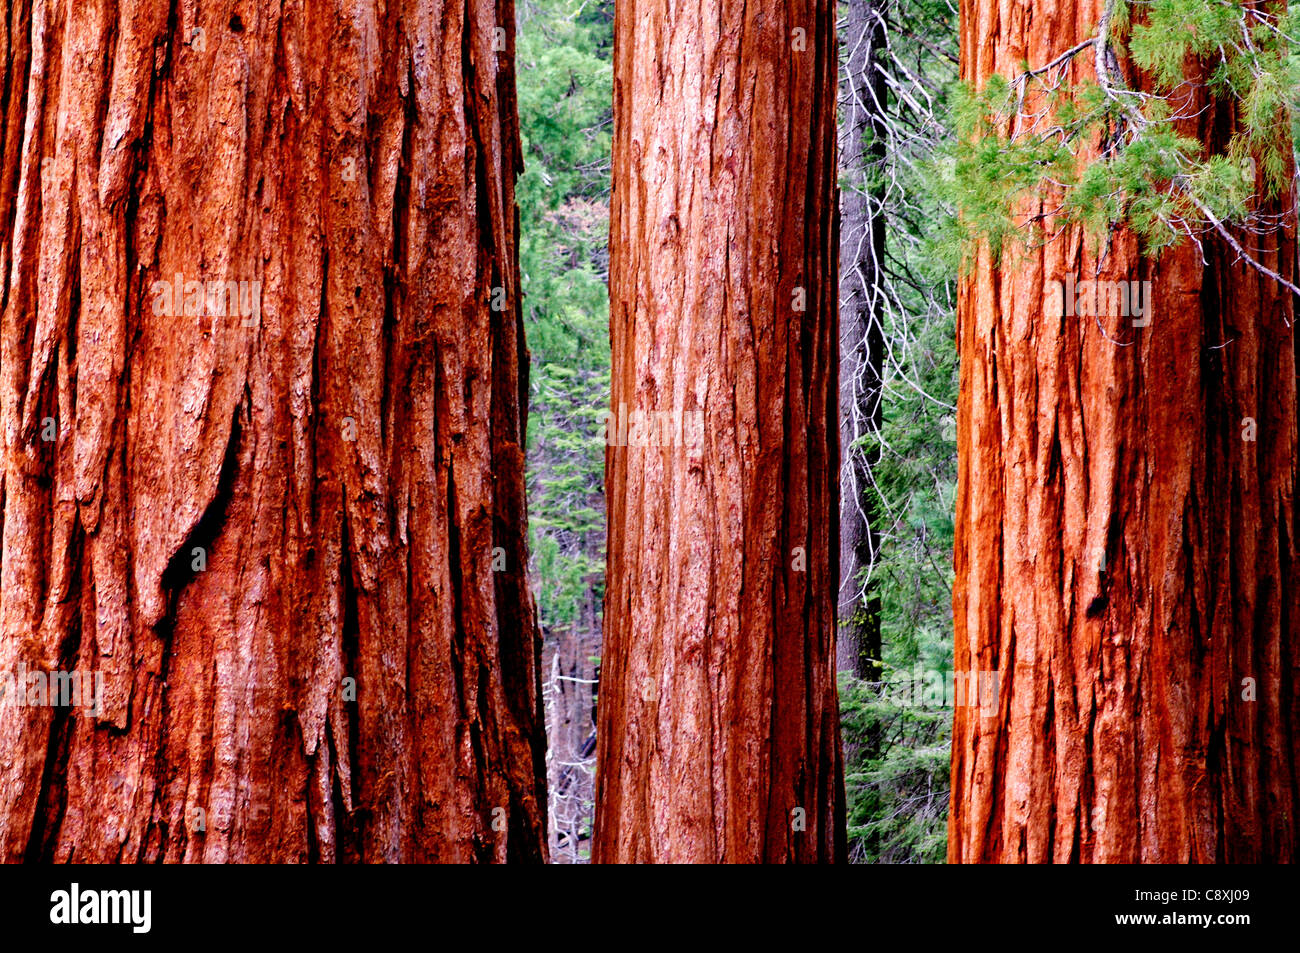 Redwood trees in the Mariposa Grove, Yosemite National Park, California Stock Photo